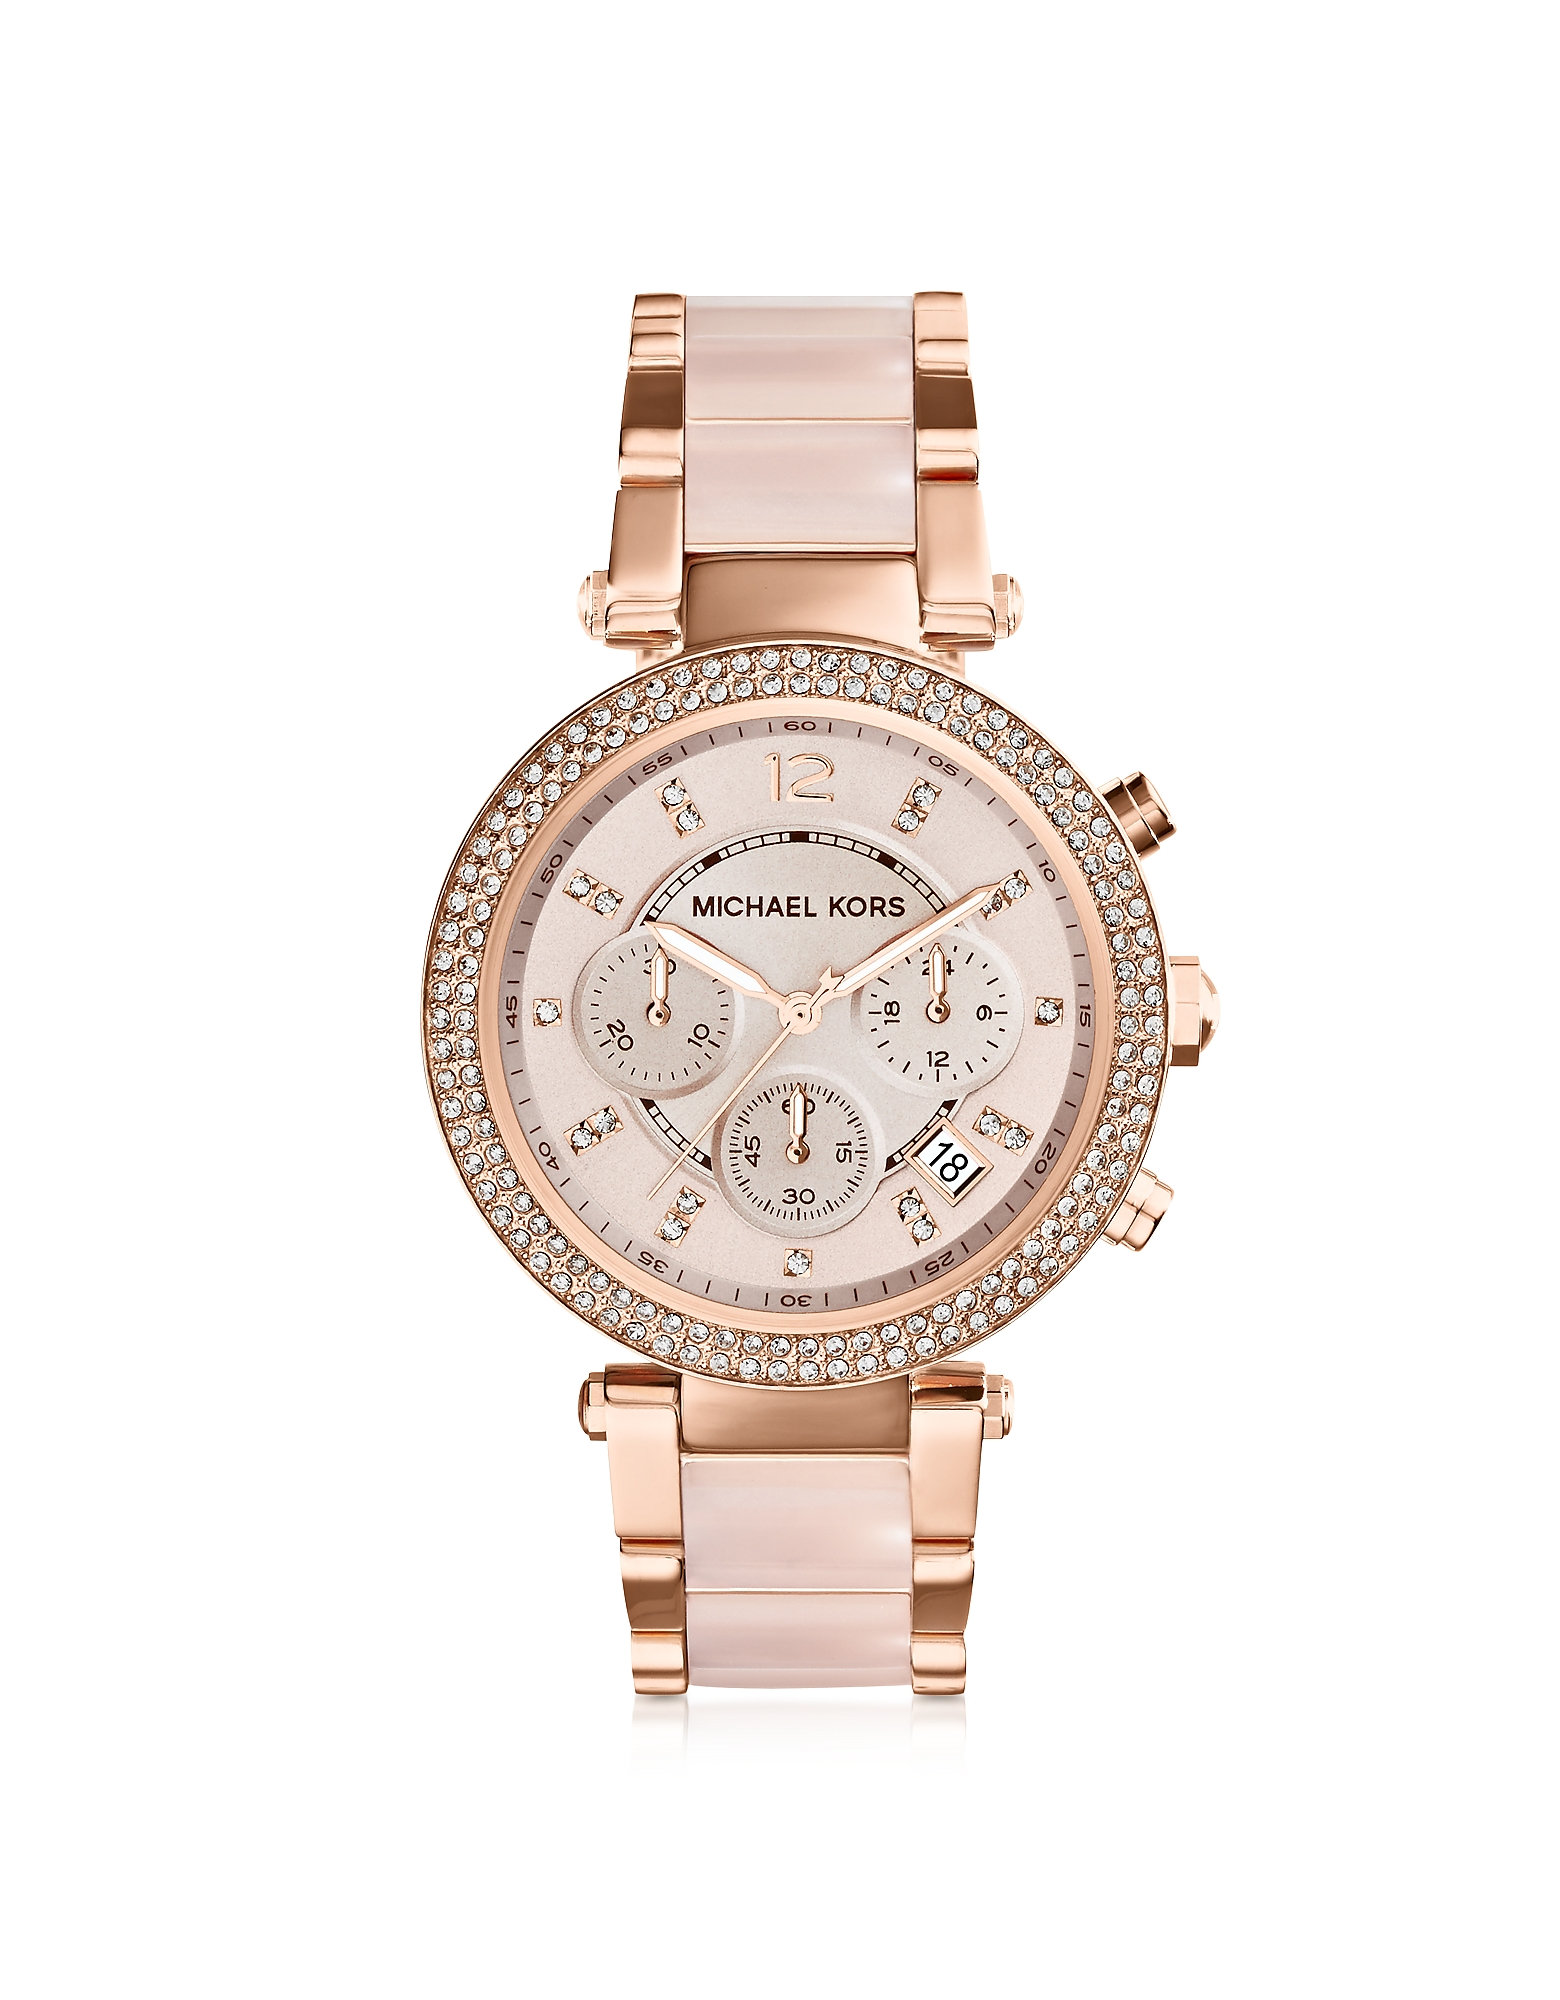 Michael Kors Women's Watches, Mid-Size Rose Golden Stainless Steel Parker Chronograph Glitz Watch